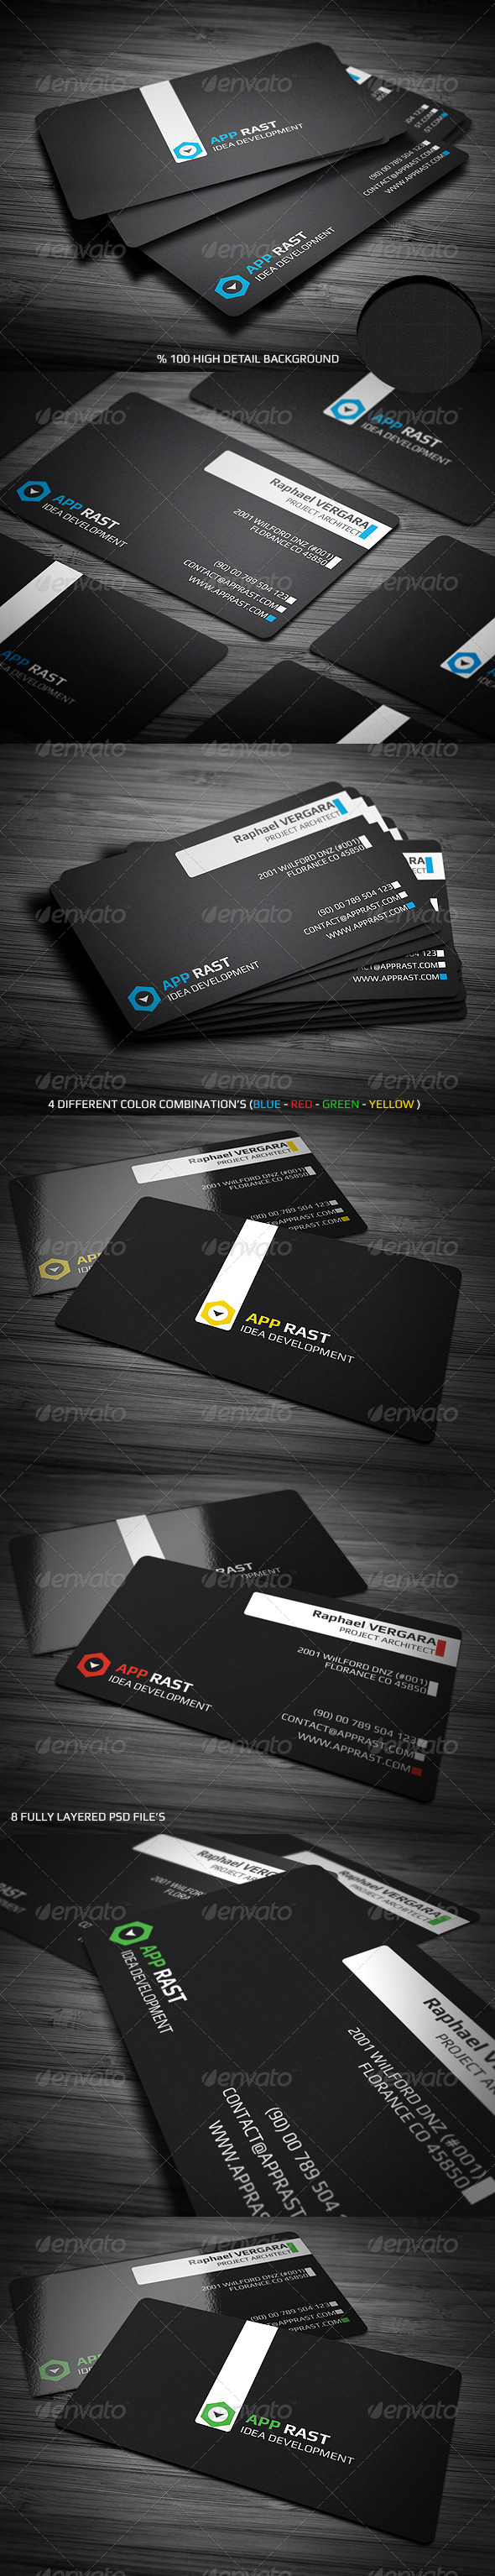 GraphicRiver Black Corporate Business Card 3323766